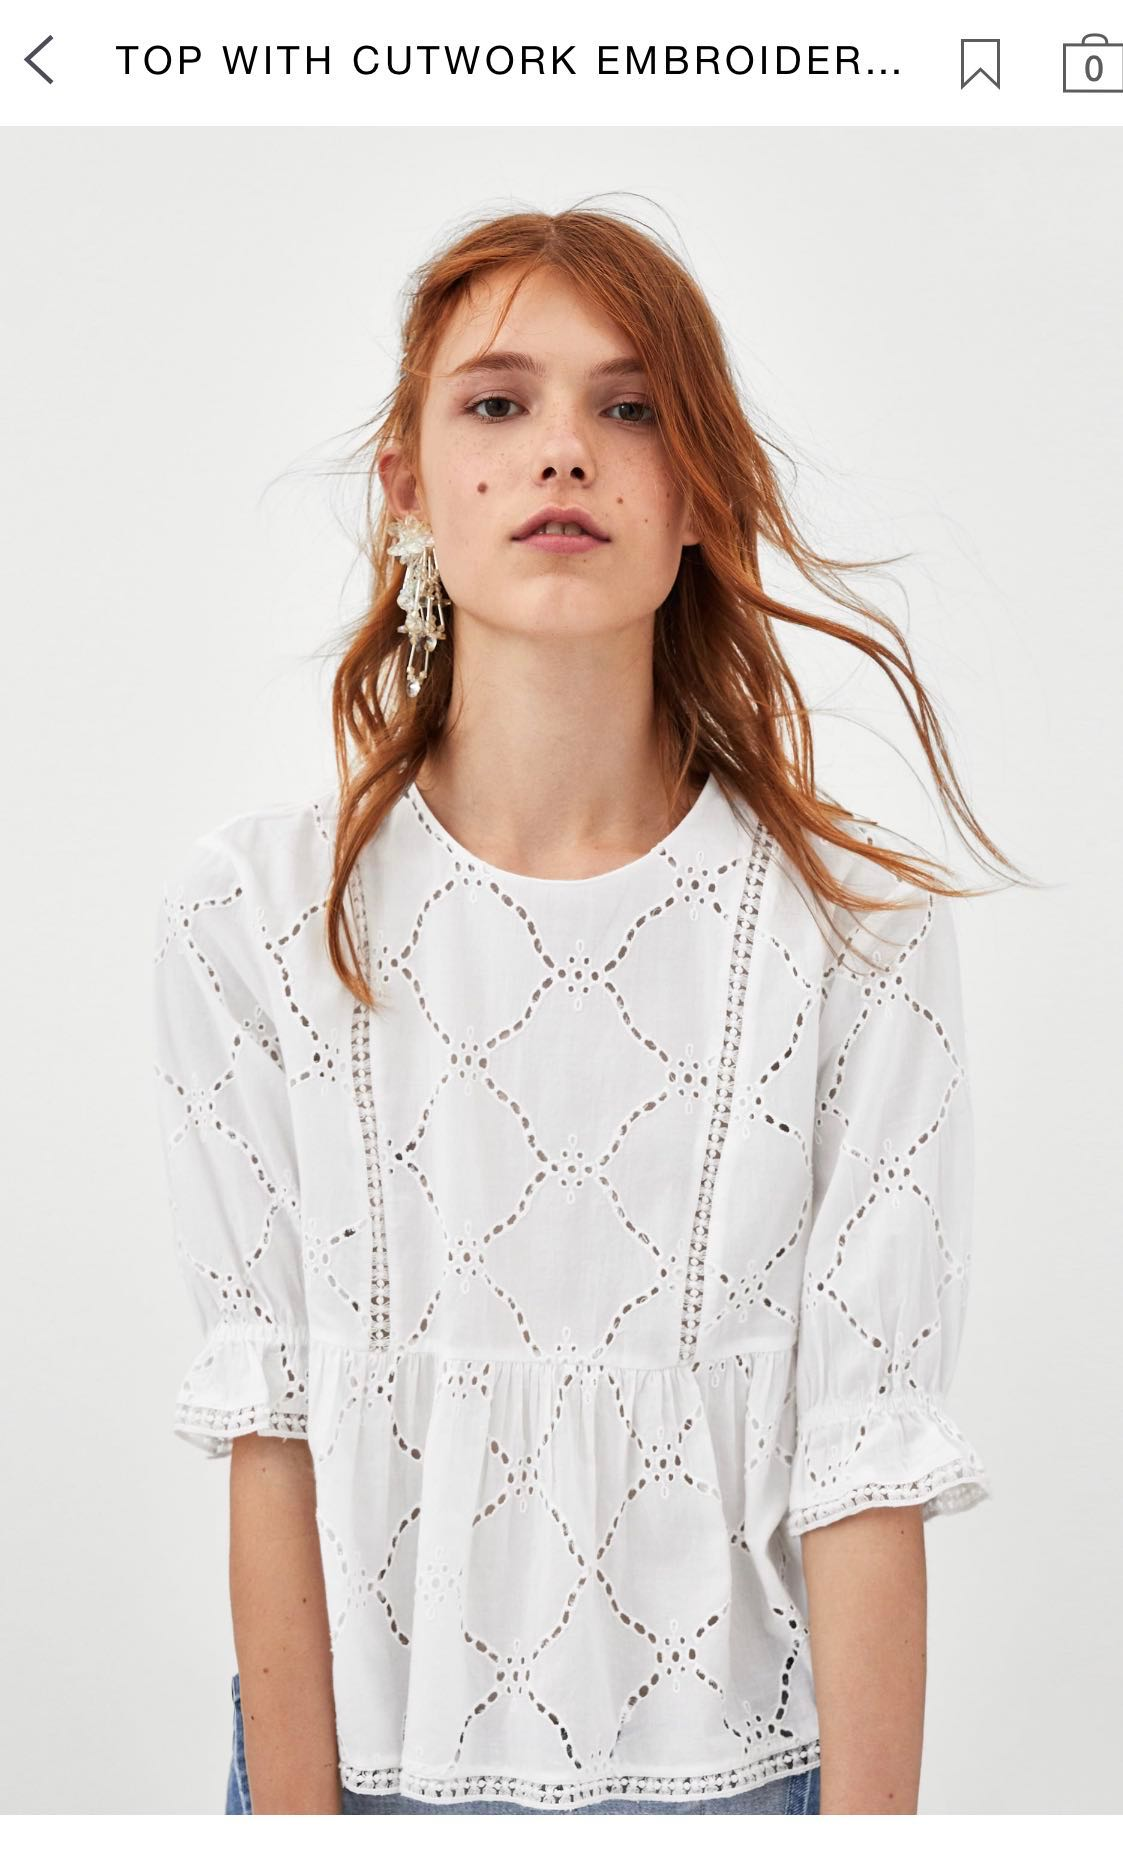 f68638f4 Zara Top with Cutwork Embroidery and Ruffles Eyelet, Women's Fashion ...